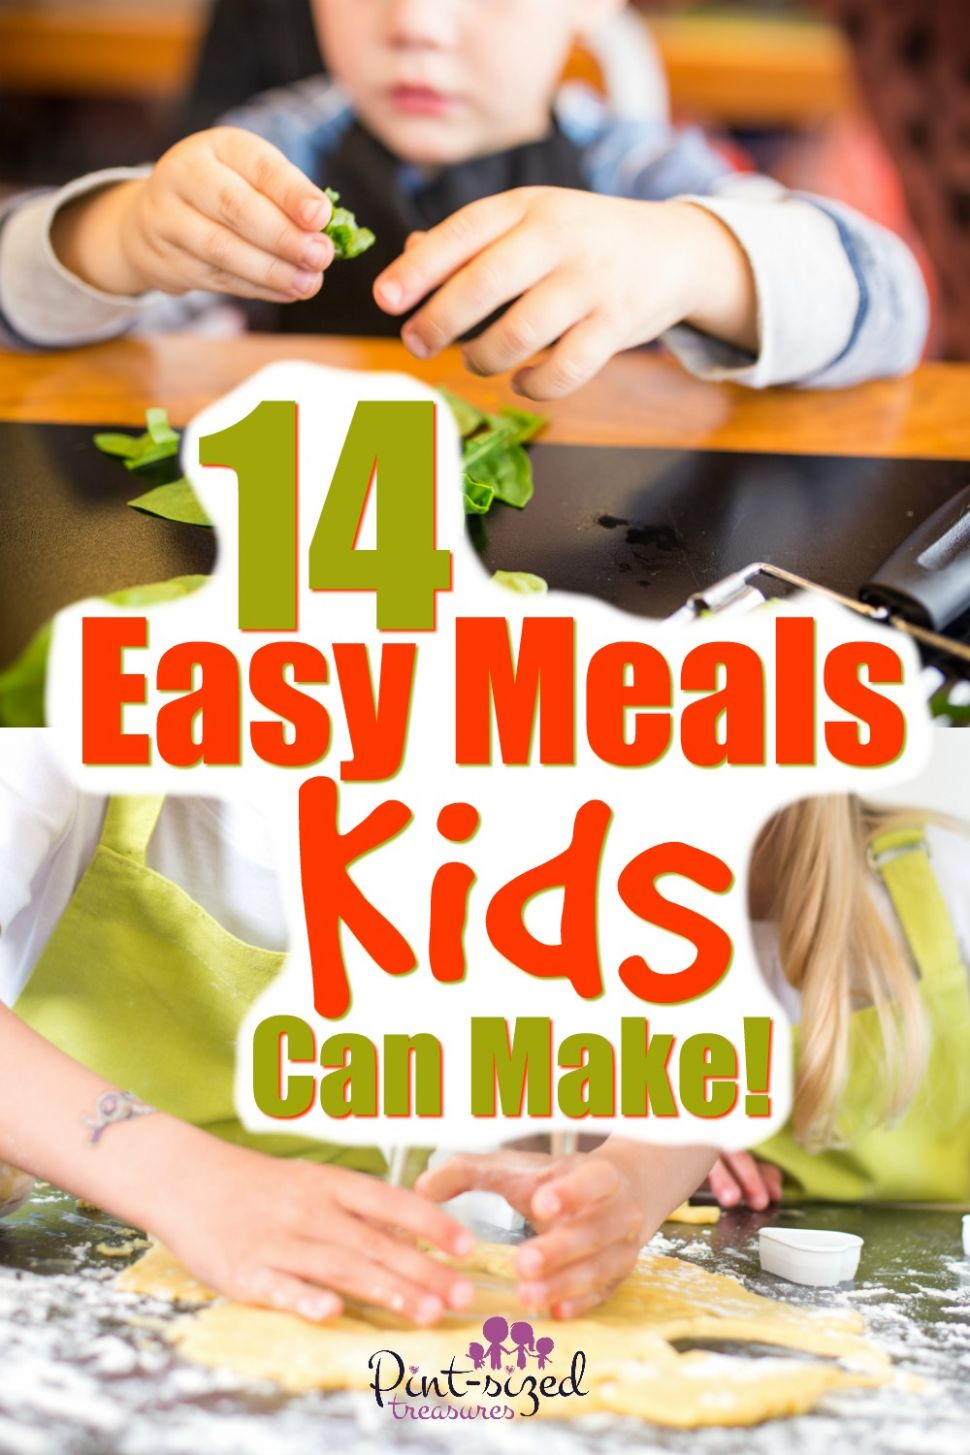 8 Easy Meals Kids Can Make - Easy Recipes Kids Can Make